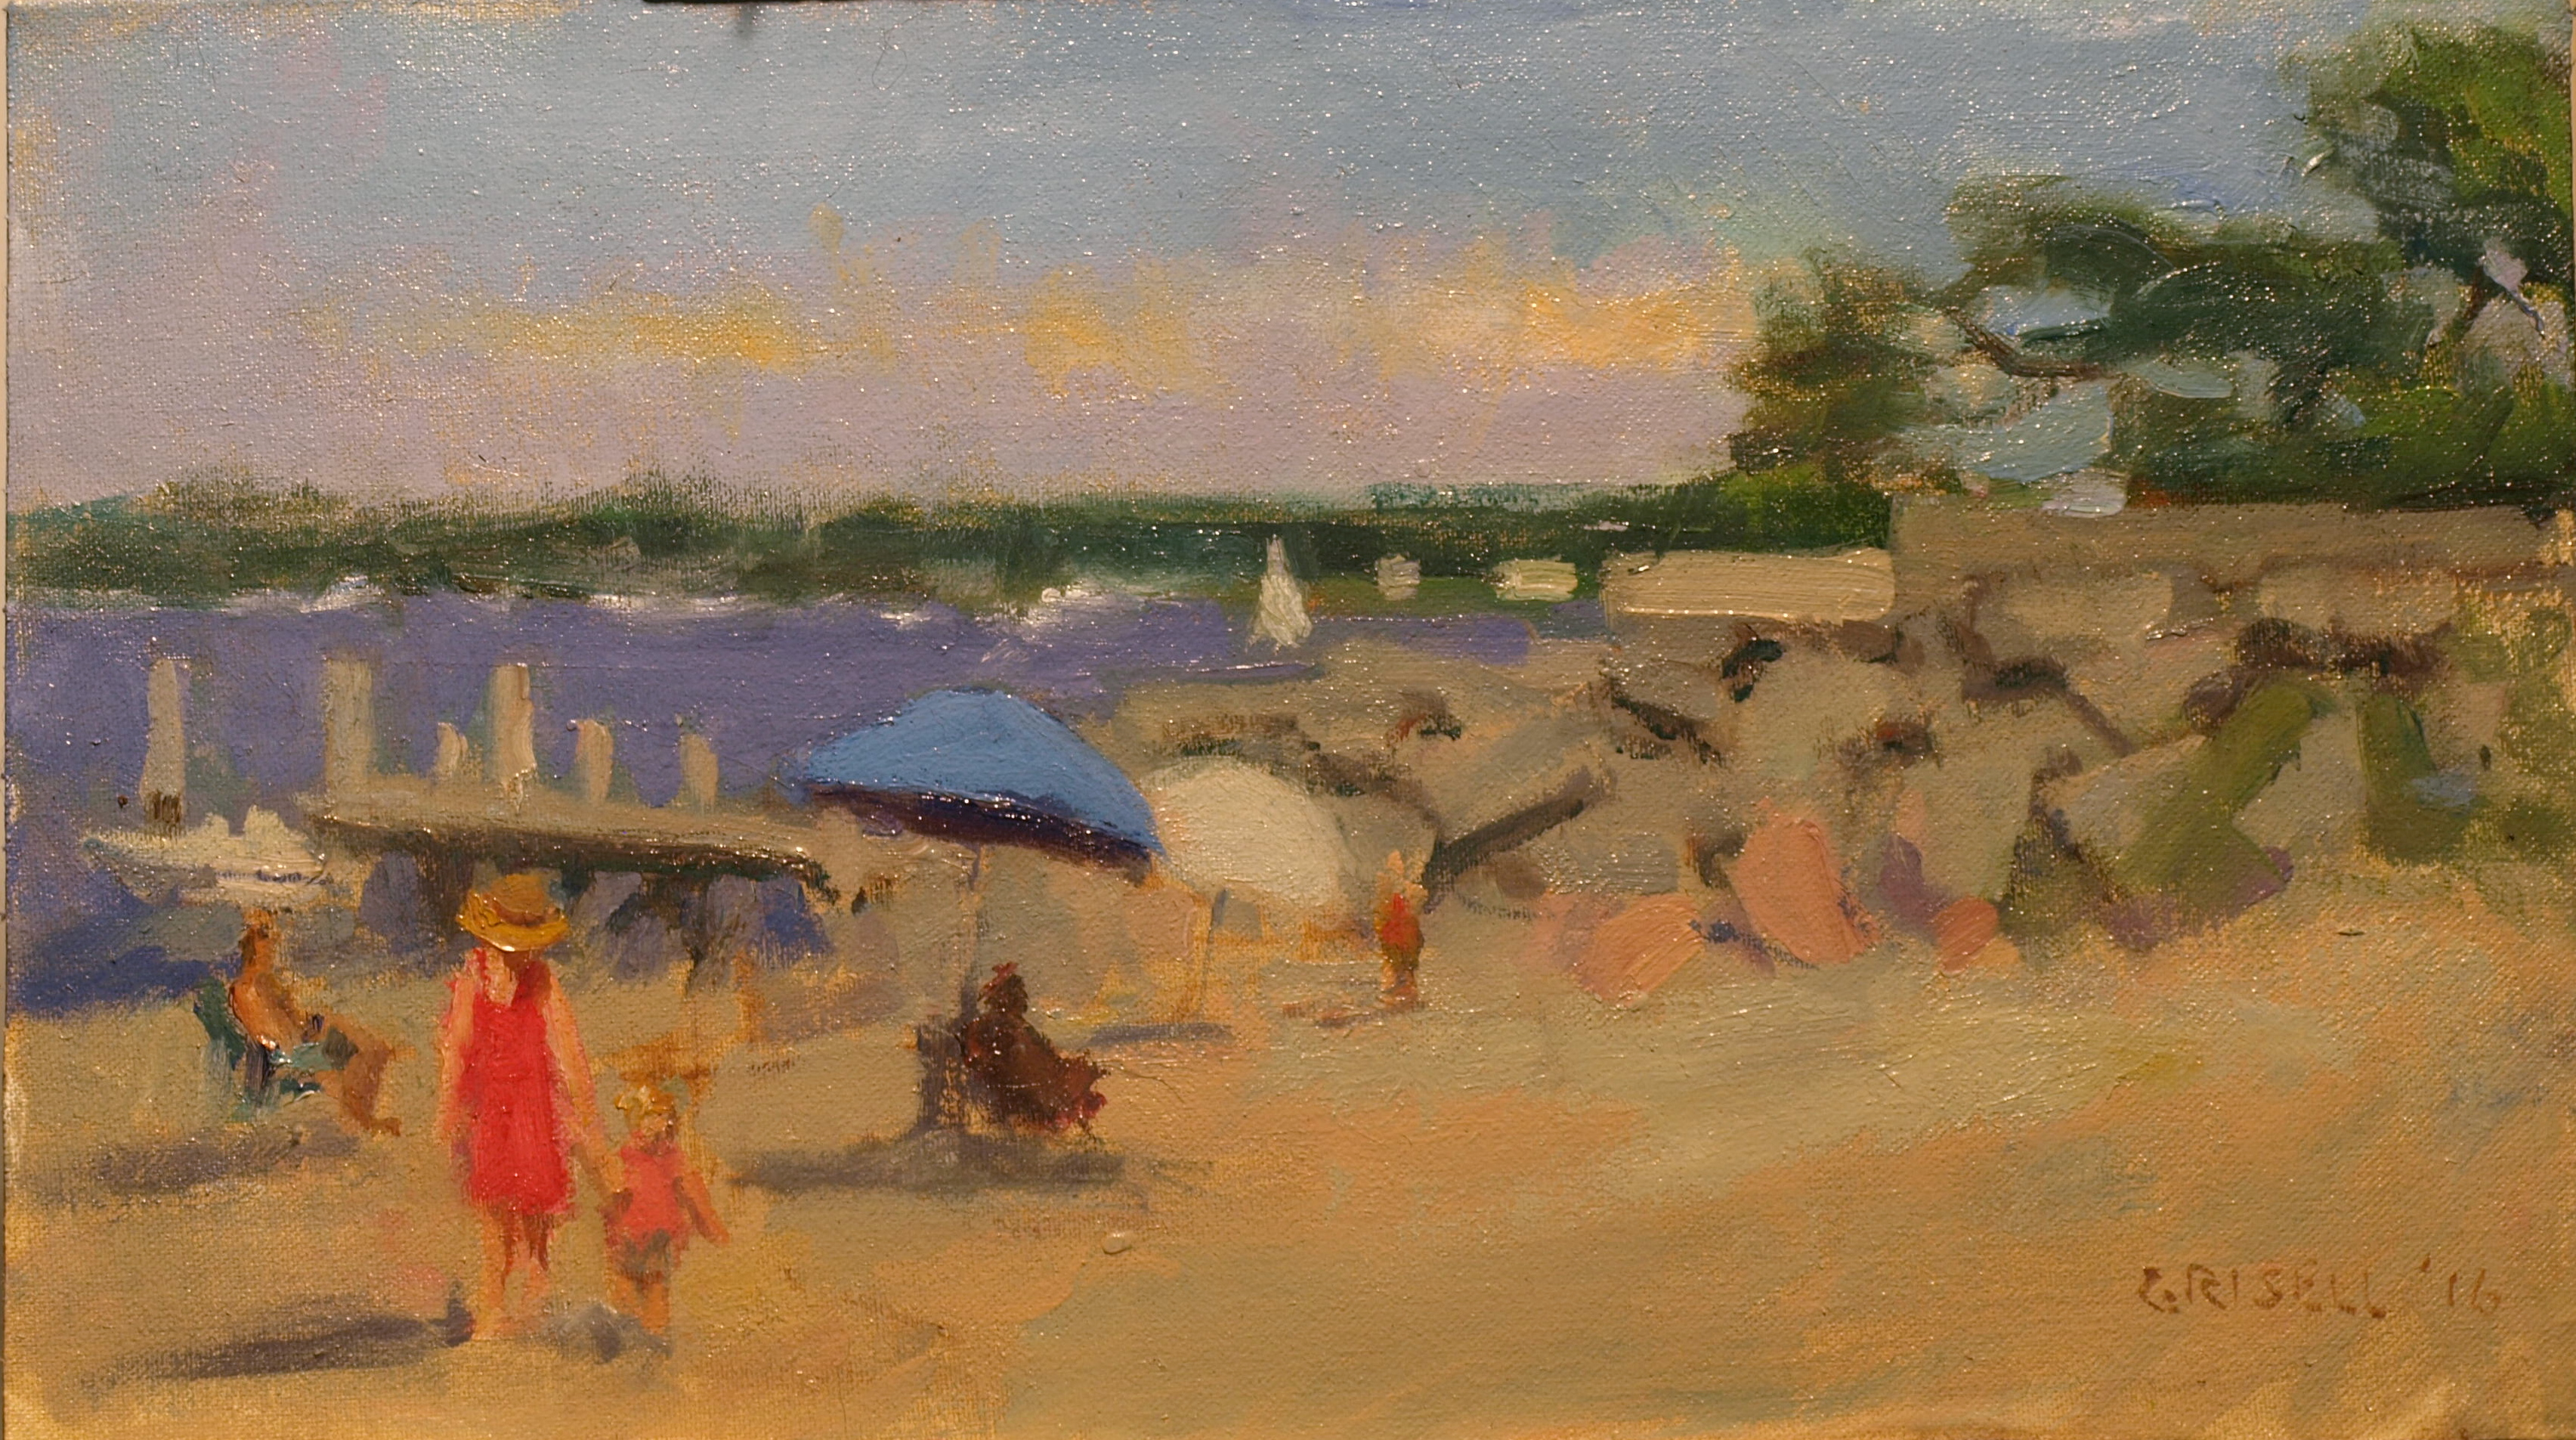 Stonington Beach, Oil on Canvas on Panel, 9 x 16 Inches, by Susan Grisell, $275